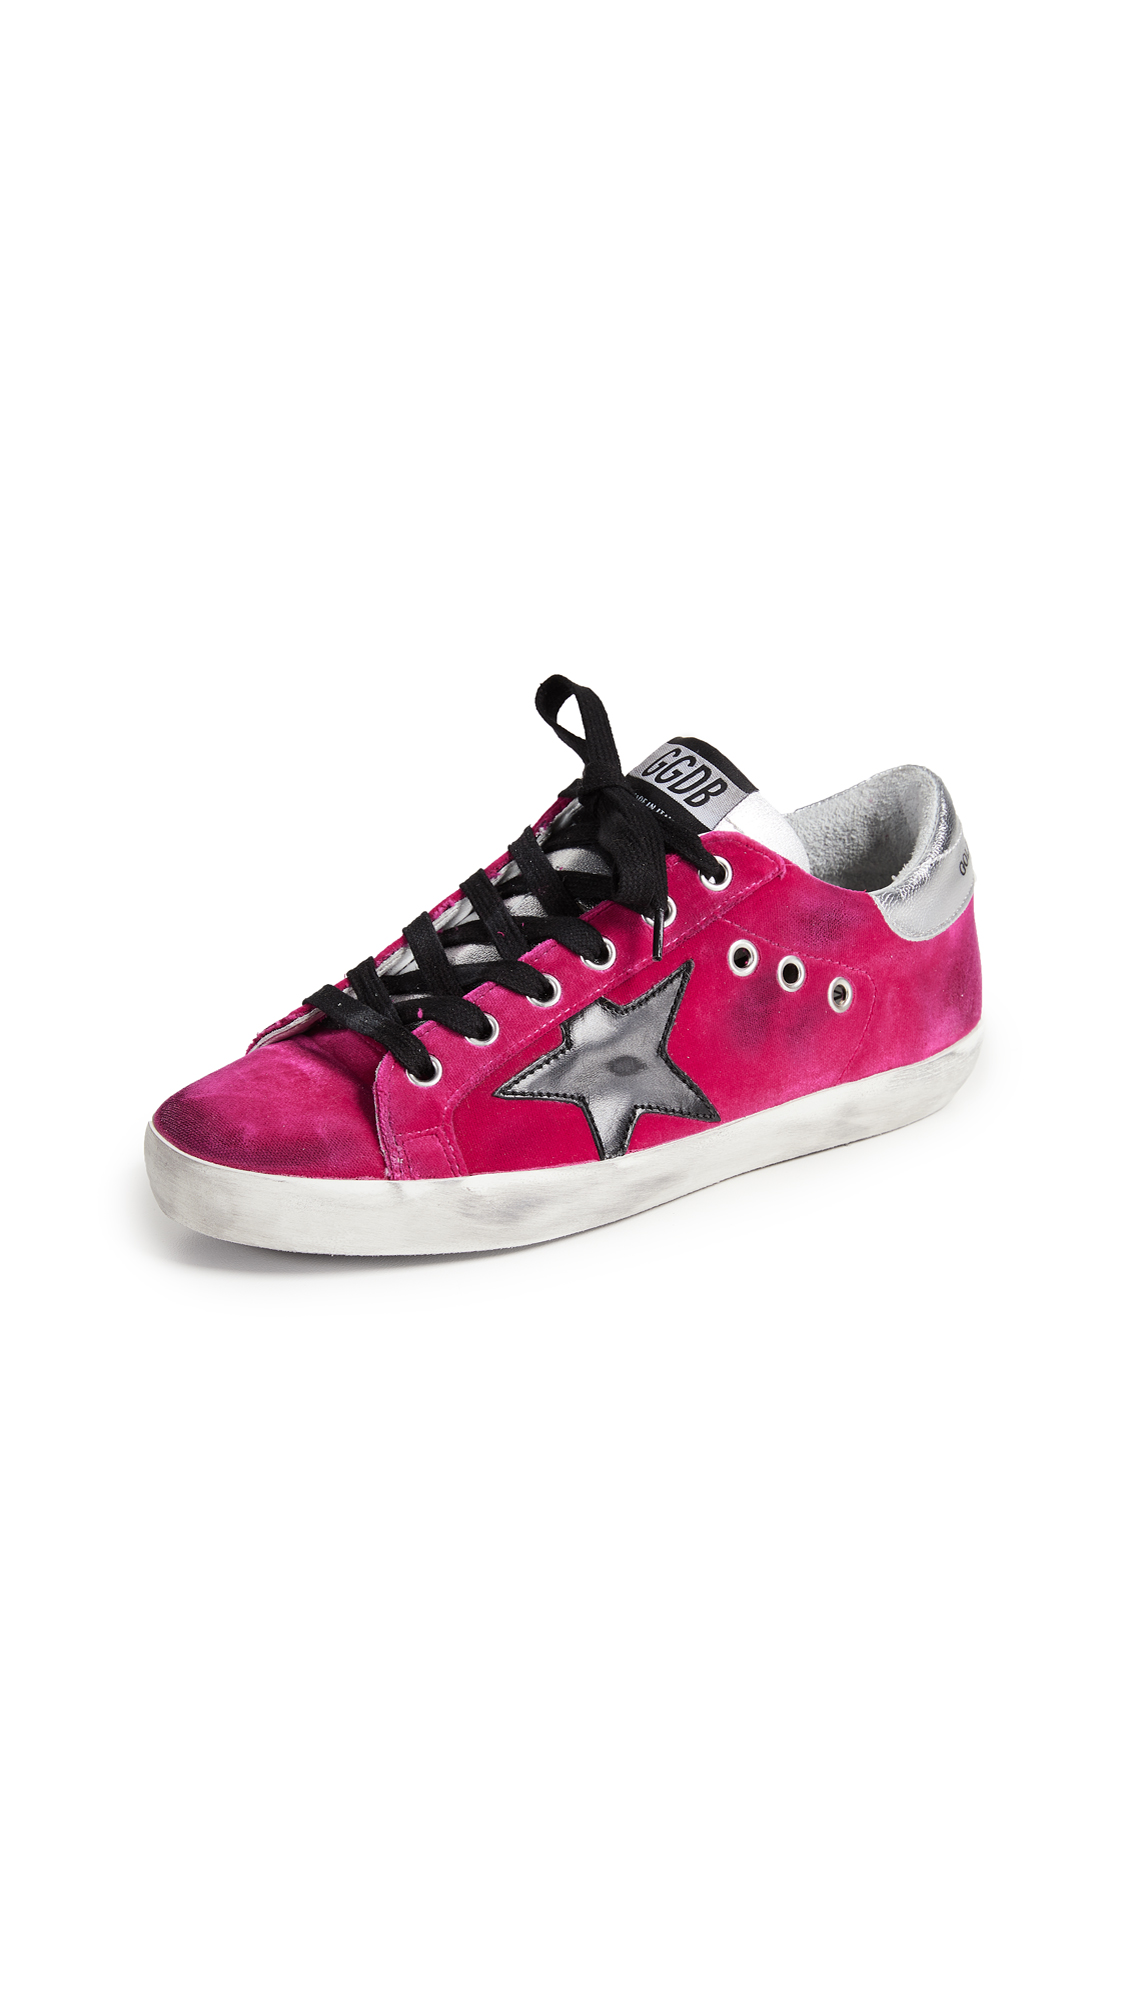 Golden Goose Superstar Sneakers - Fuchsia/Black